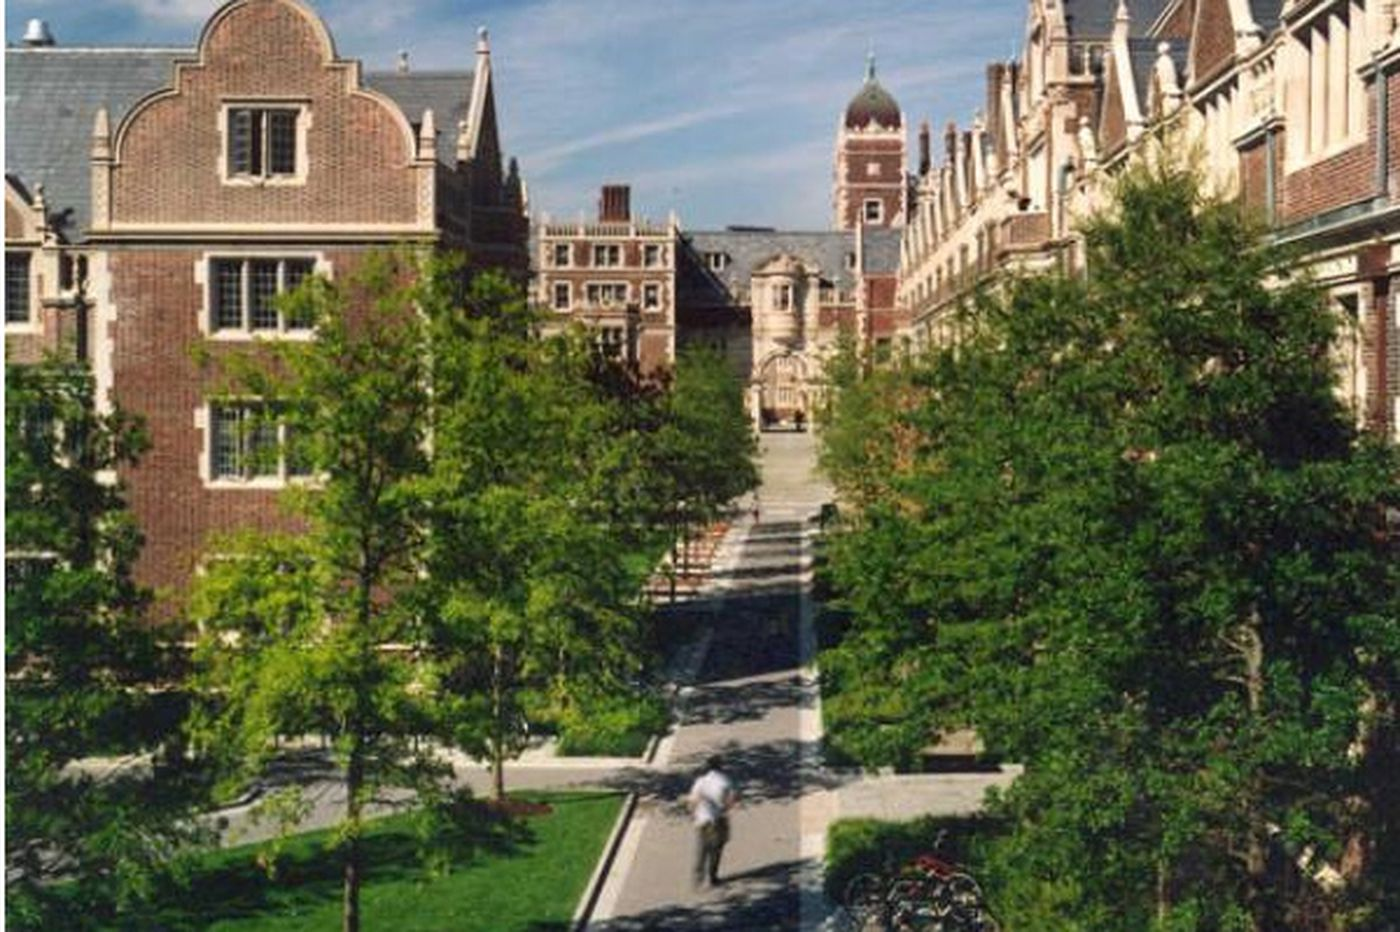 Cautious colleges prepare for the possibility of Ebola